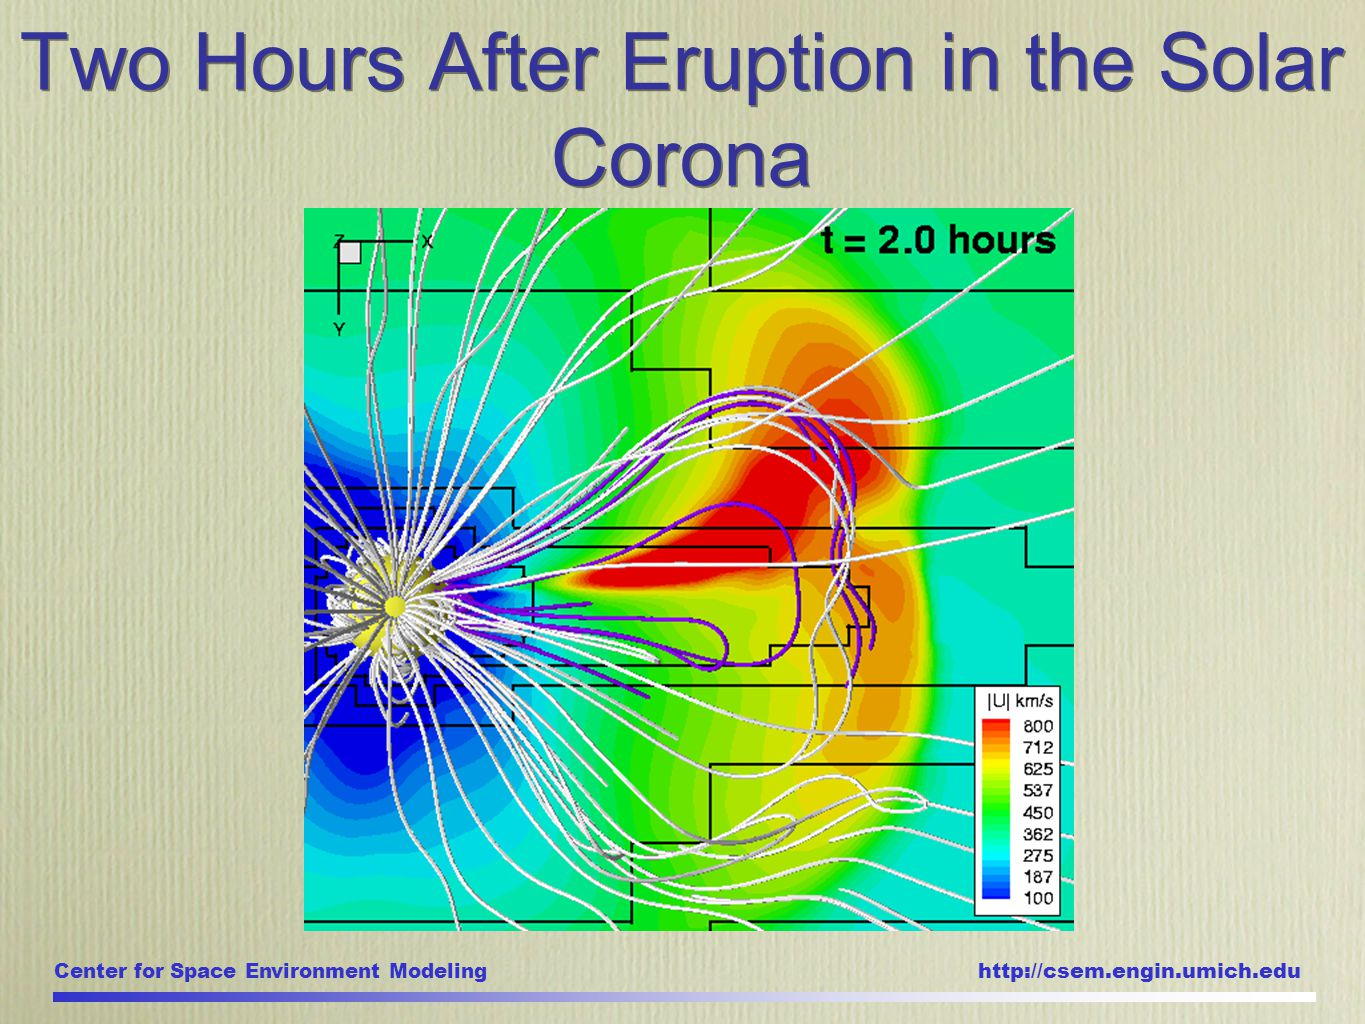 Center for Space Environment Modeling http://csem.engin.umich.edu Two Hours After Eruption in the Solar Corona